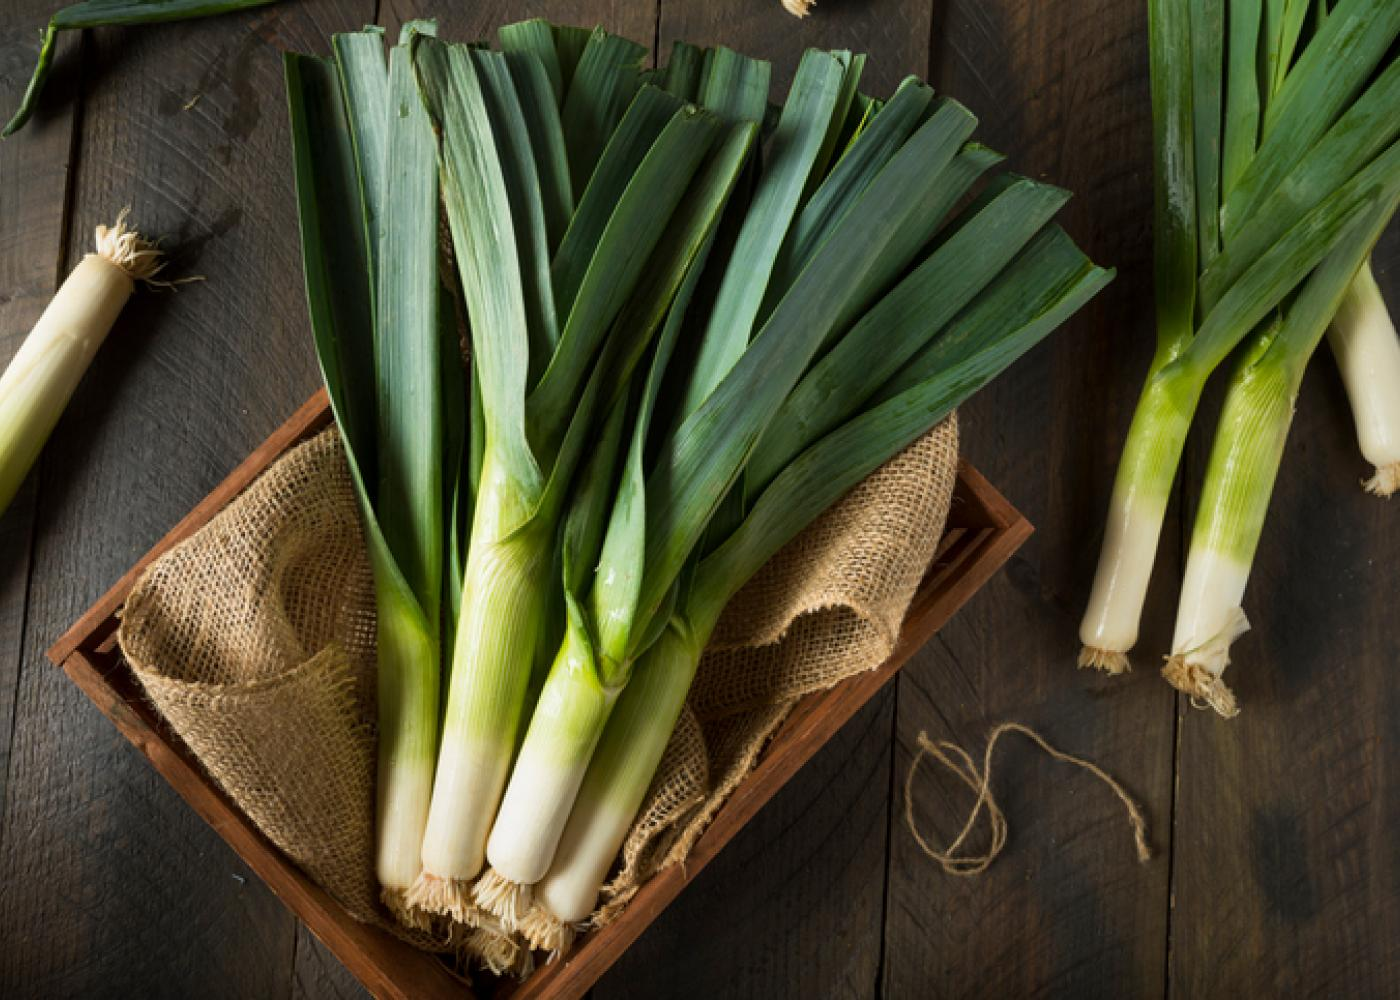 leeks on a wood table